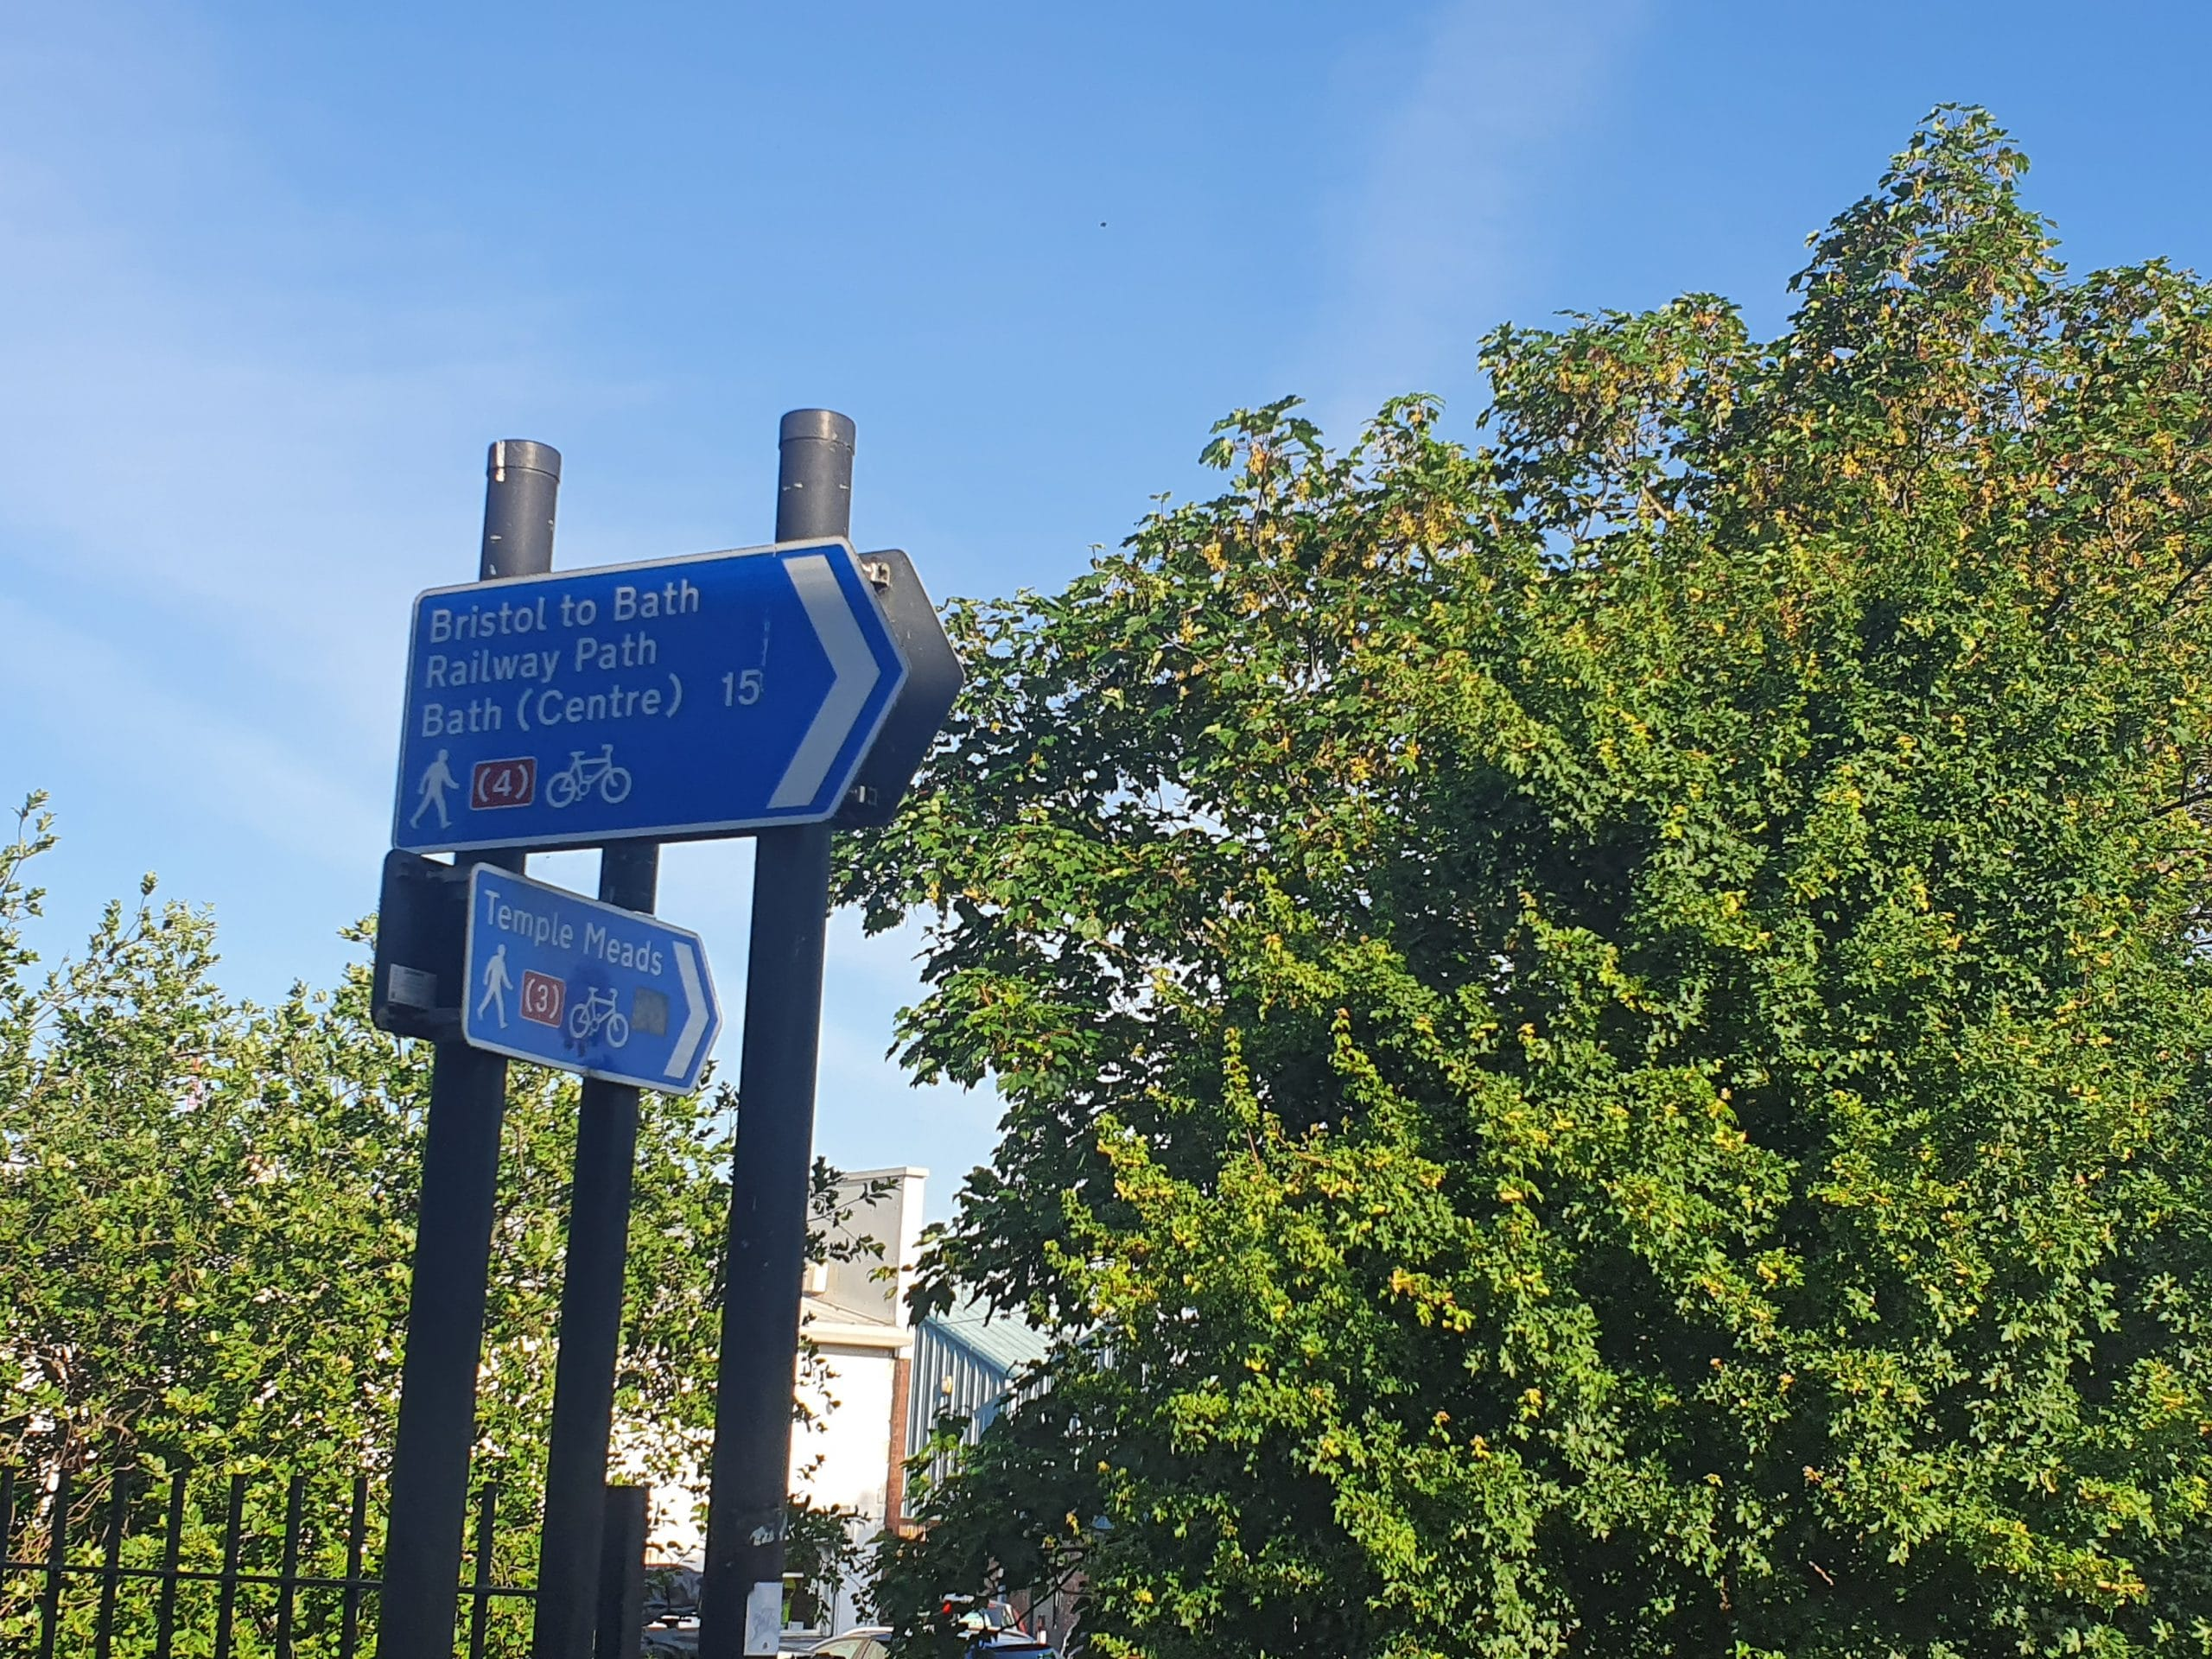 Photo of pedestrians and cyclist traffic signs showing: Bristol to Bath Railway Path; Bath (Centre) 15; Temple Meads. There are big trees next to the signs.